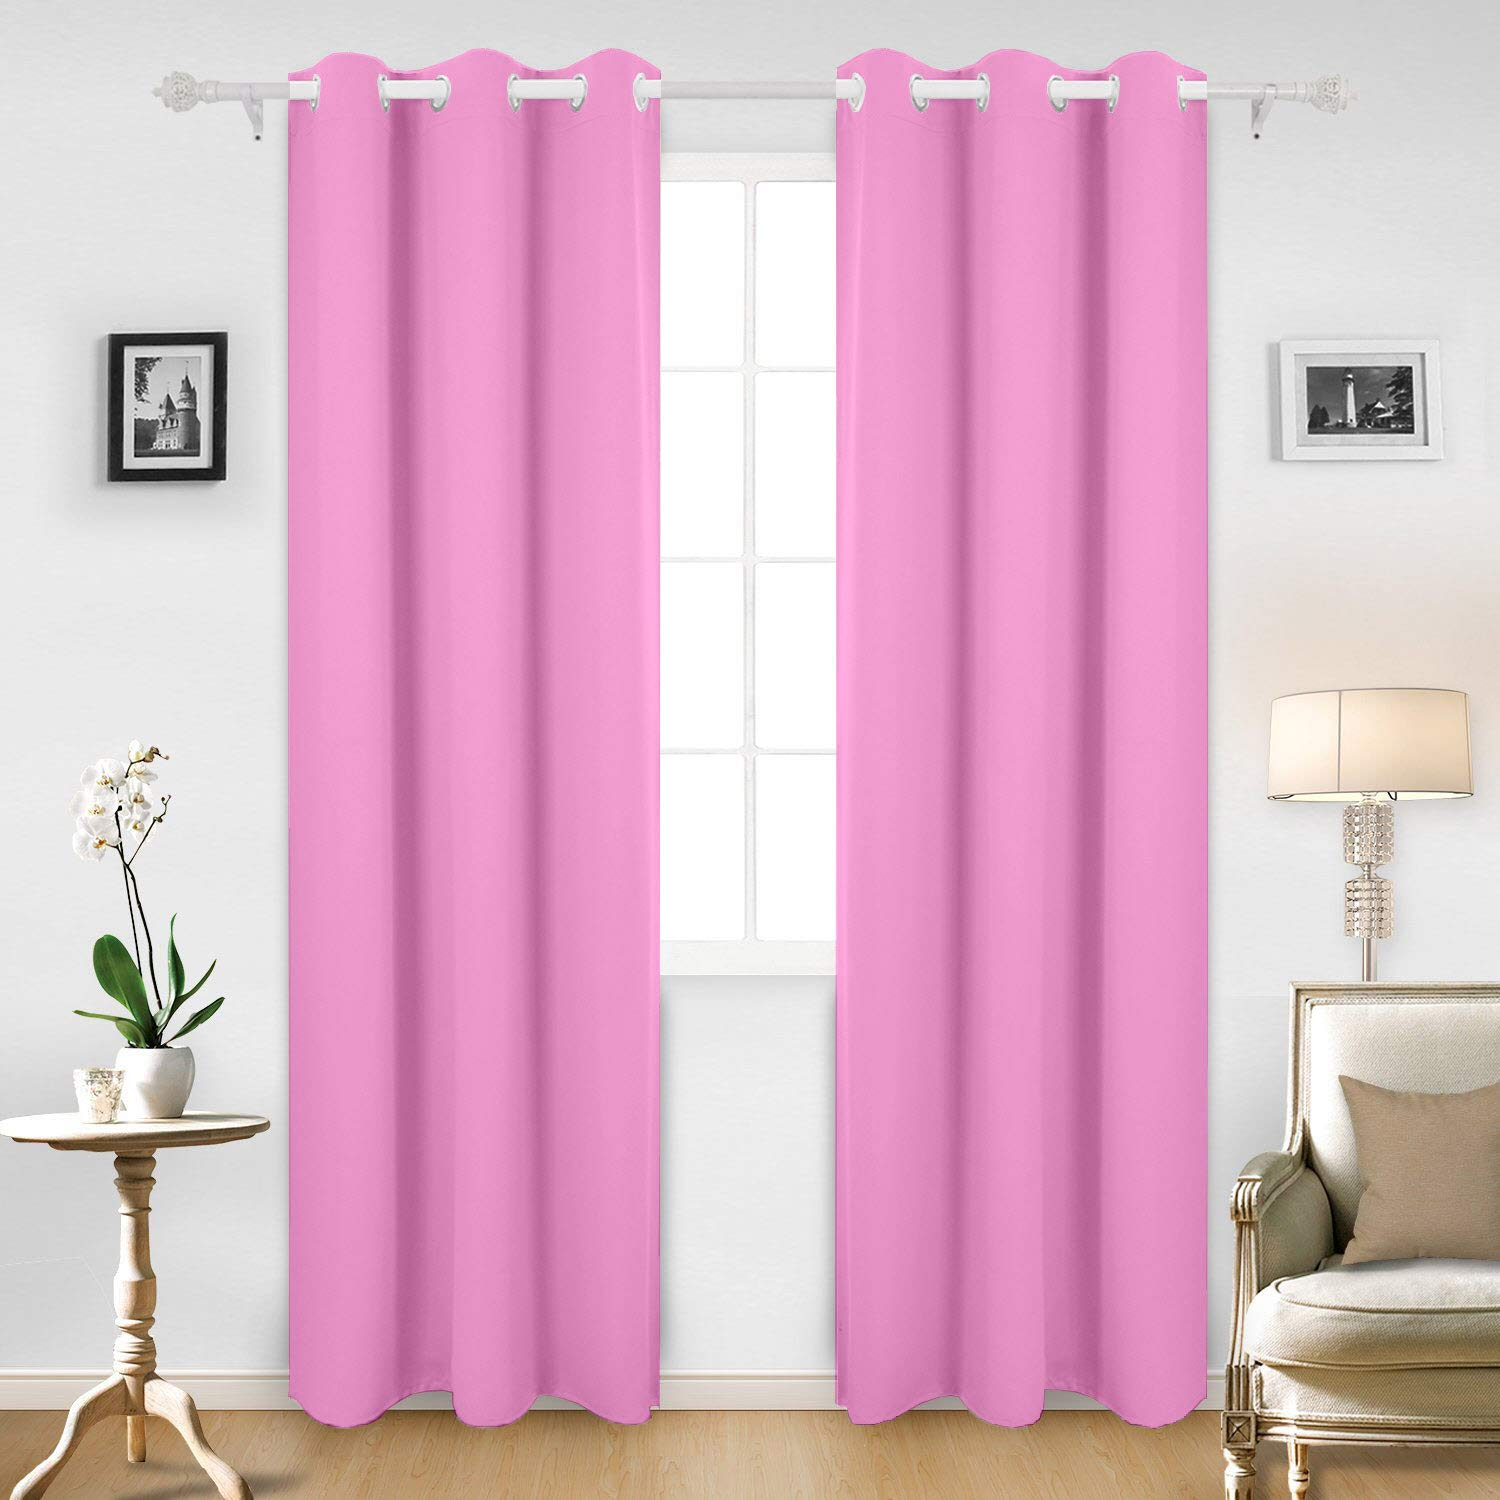 Cloth Fusion Valance Blackout Curtains Set of 2- with 2 Tie